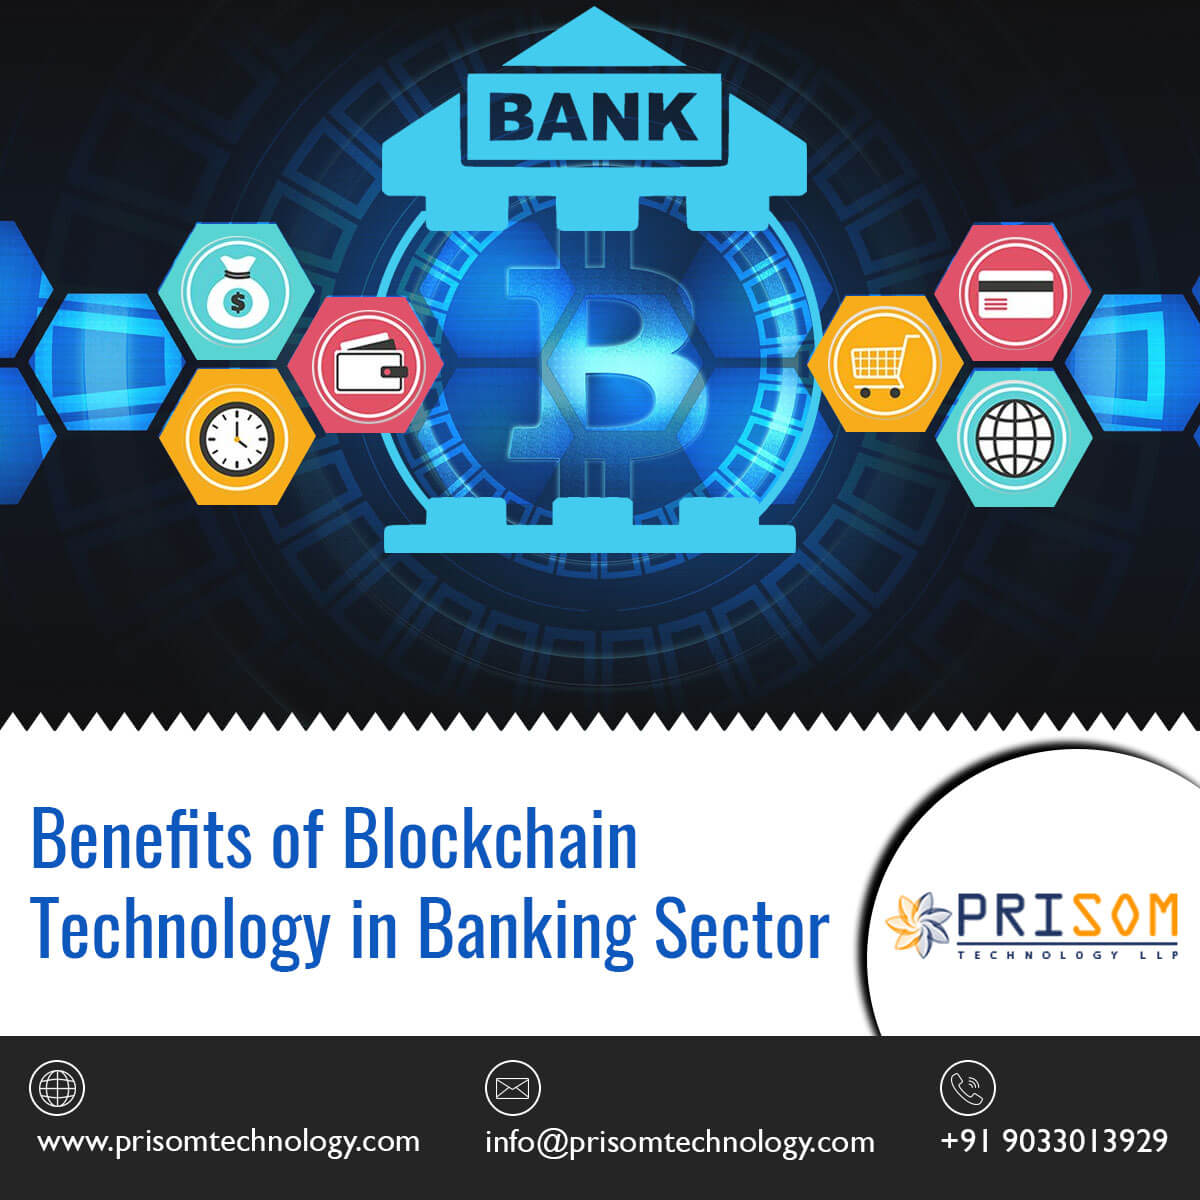 Benefits of Blockchain Technology in Banking Sector